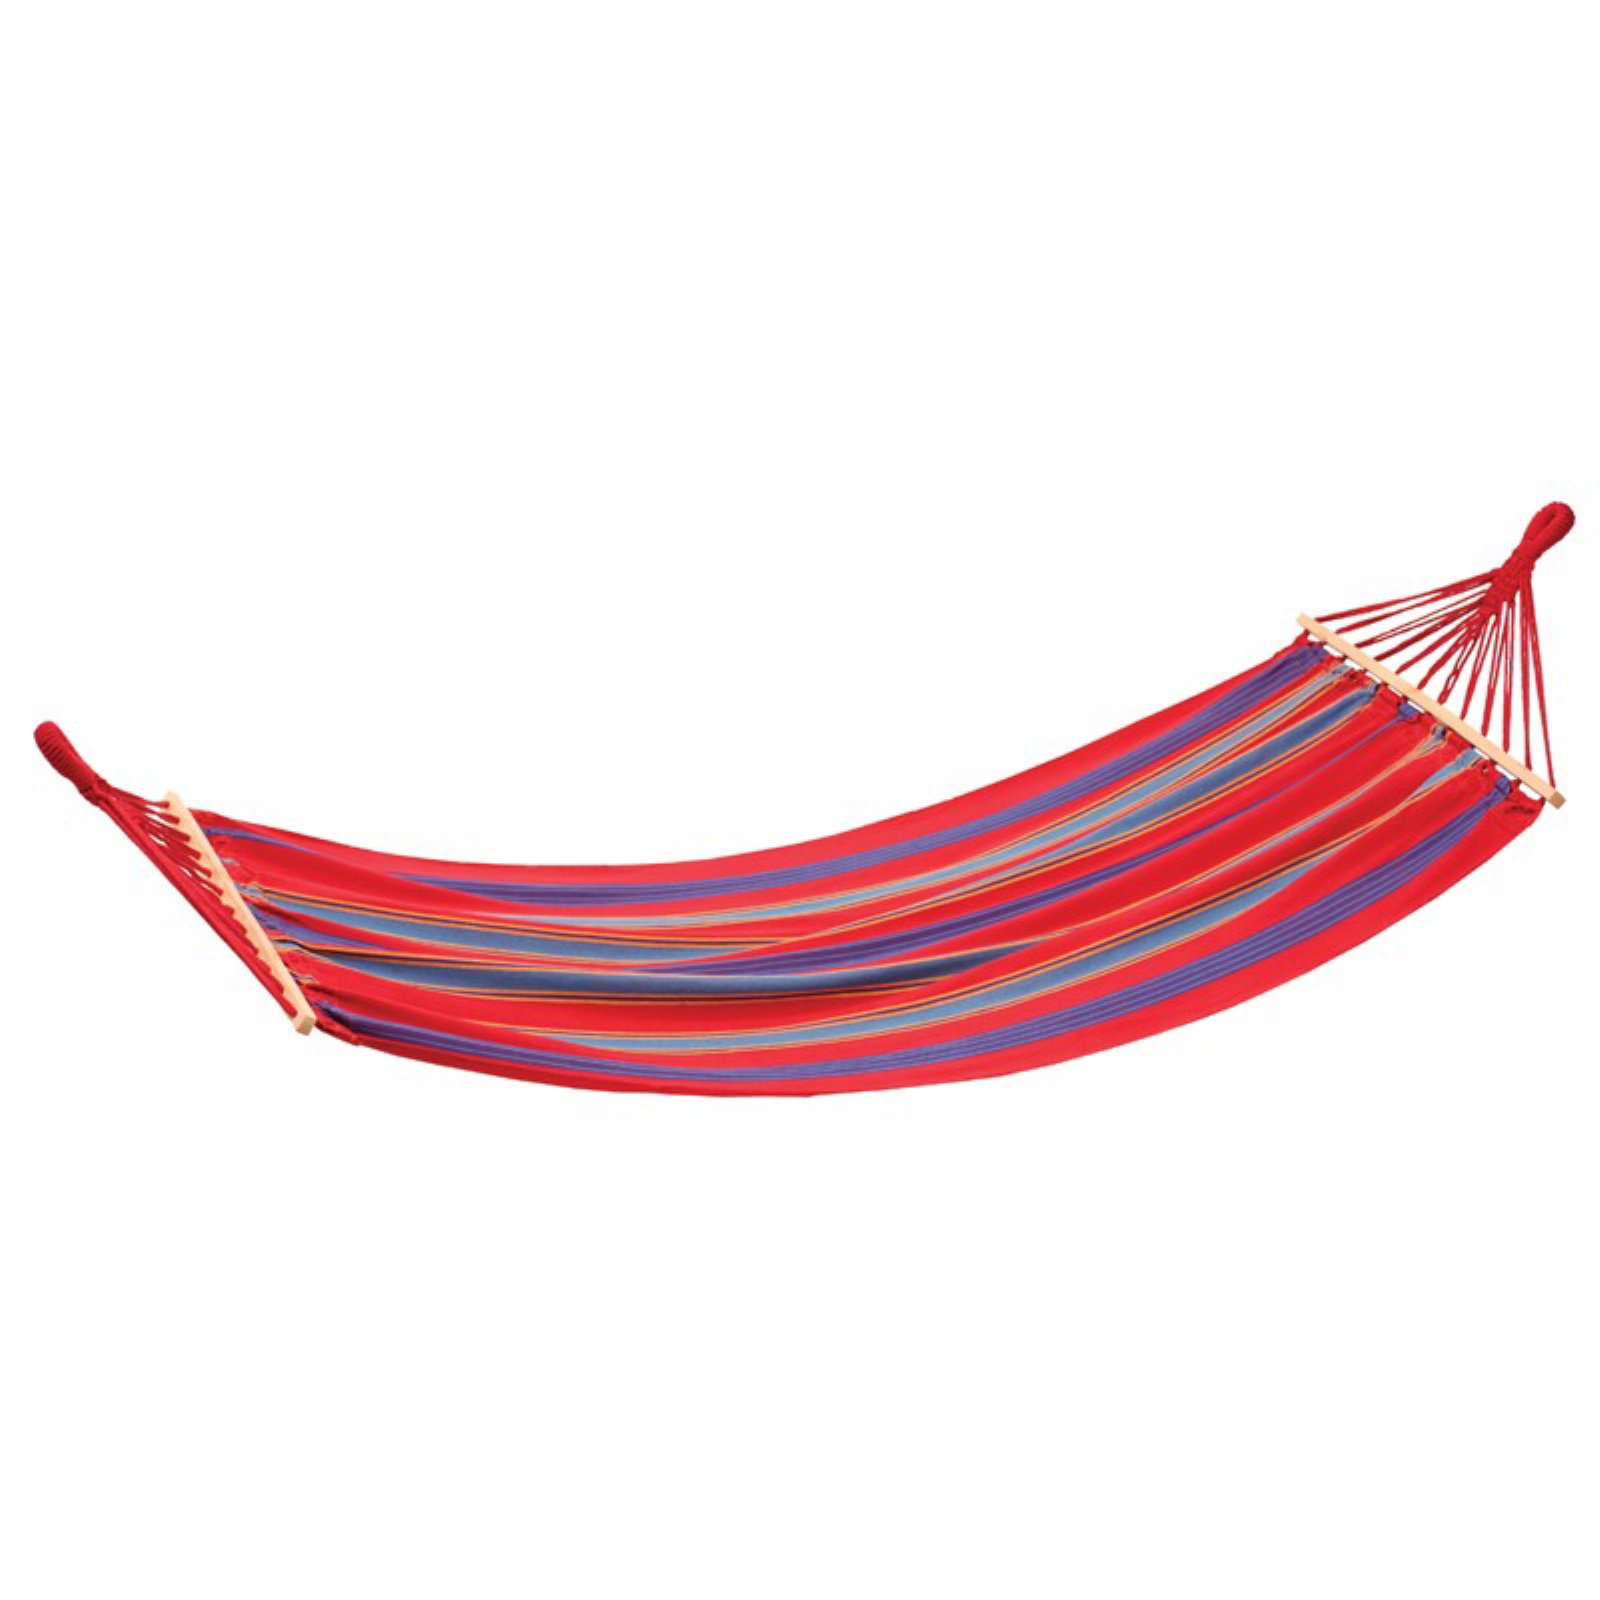 Stansport 30800-60 Bahamas Cotton Hammock Single Red 78 In X 37 In by Stansport